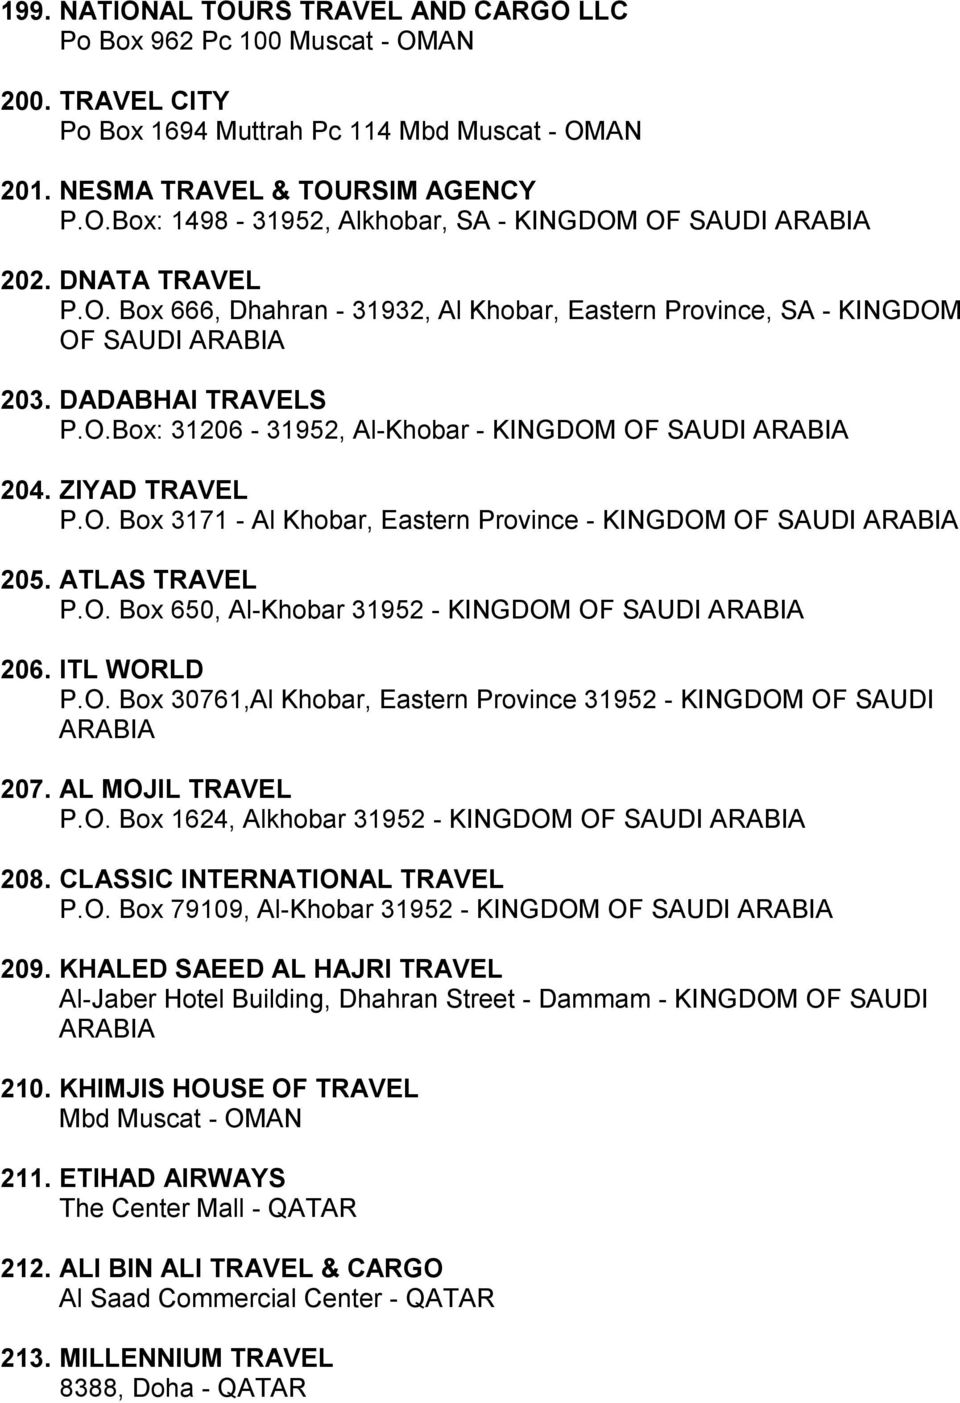 ZIYAD TRAVEL P.O. Box 3171 - Al Khobar, Eastern Province - KINGDOM OF SAUDI ARABIA 205. ATLAS TRAVEL P.O. Box 650, Al-Khobar 31952 - KINGDOM OF SAUDI ARABIA 206. ITL WORLD P.O. Box 30761,Al Khobar, Eastern Province 31952 - KINGDOM OF SAUDI ARABIA 207.